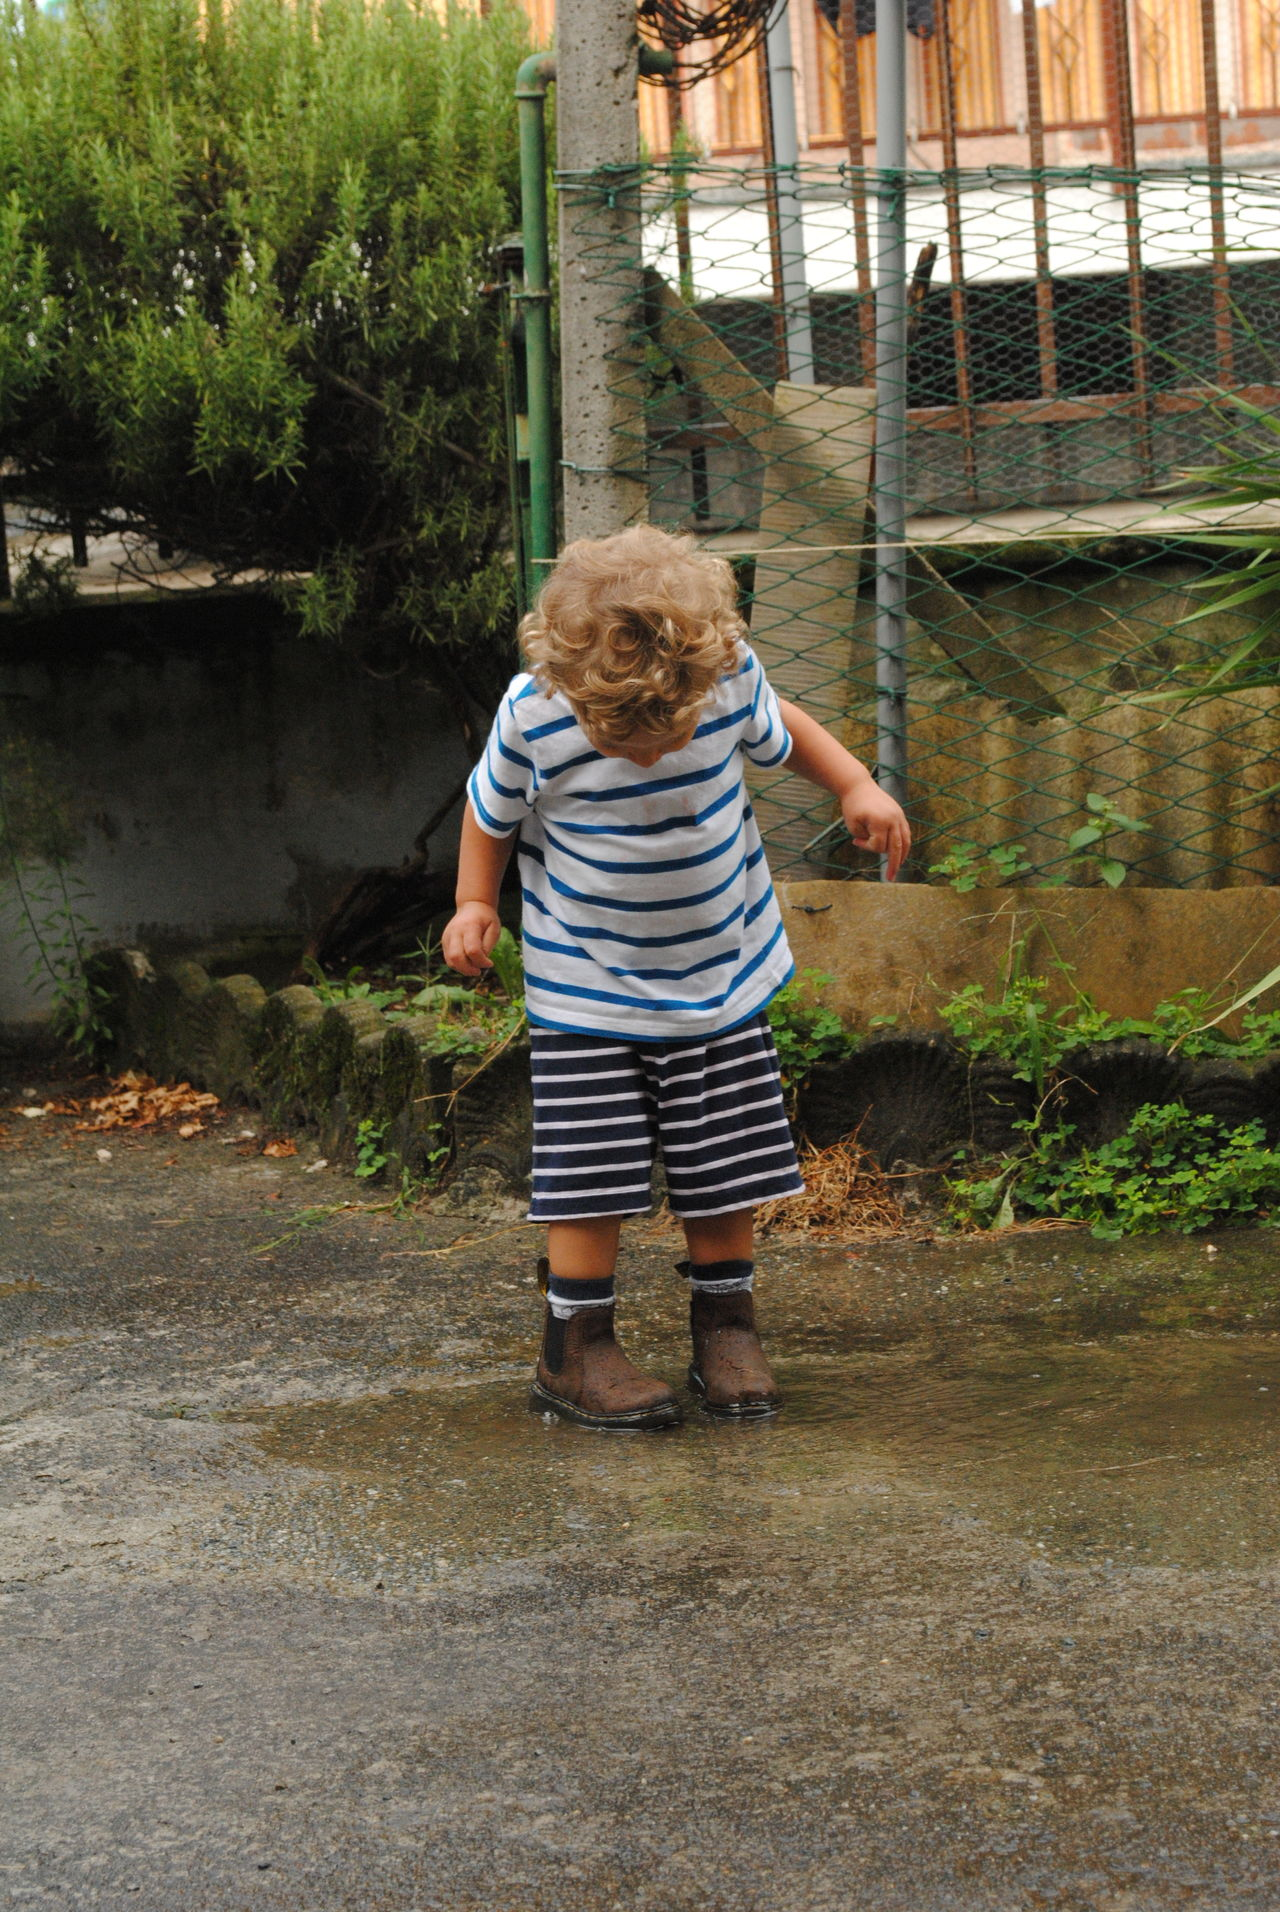 After The Rain Childhood Freedom Happyness Outdoors Playing Outdoors Puddle